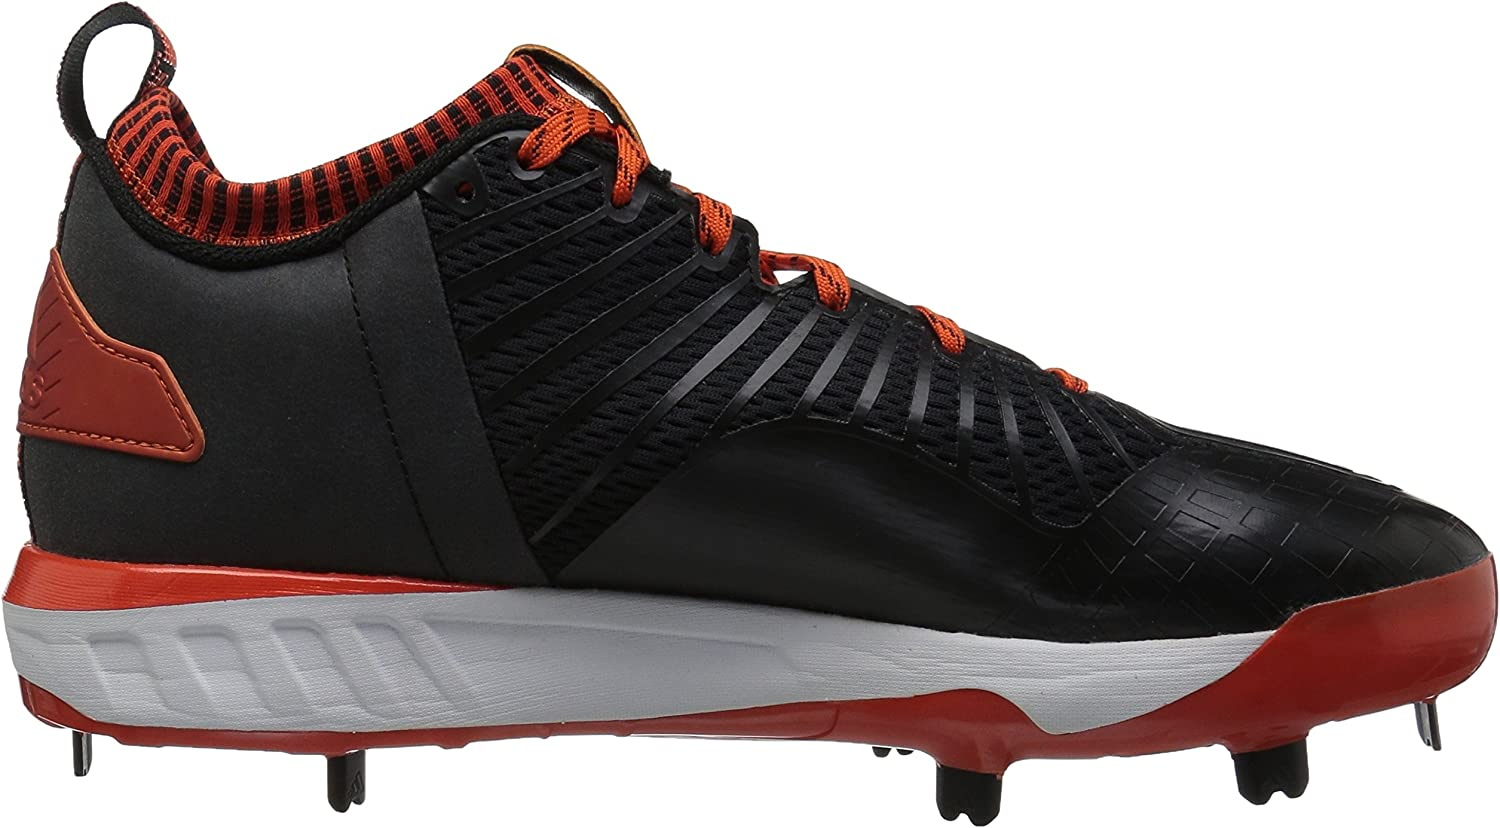 adidas Men's Boost Icon 3 Baseball Shoe Black/White/Collegiate Orange